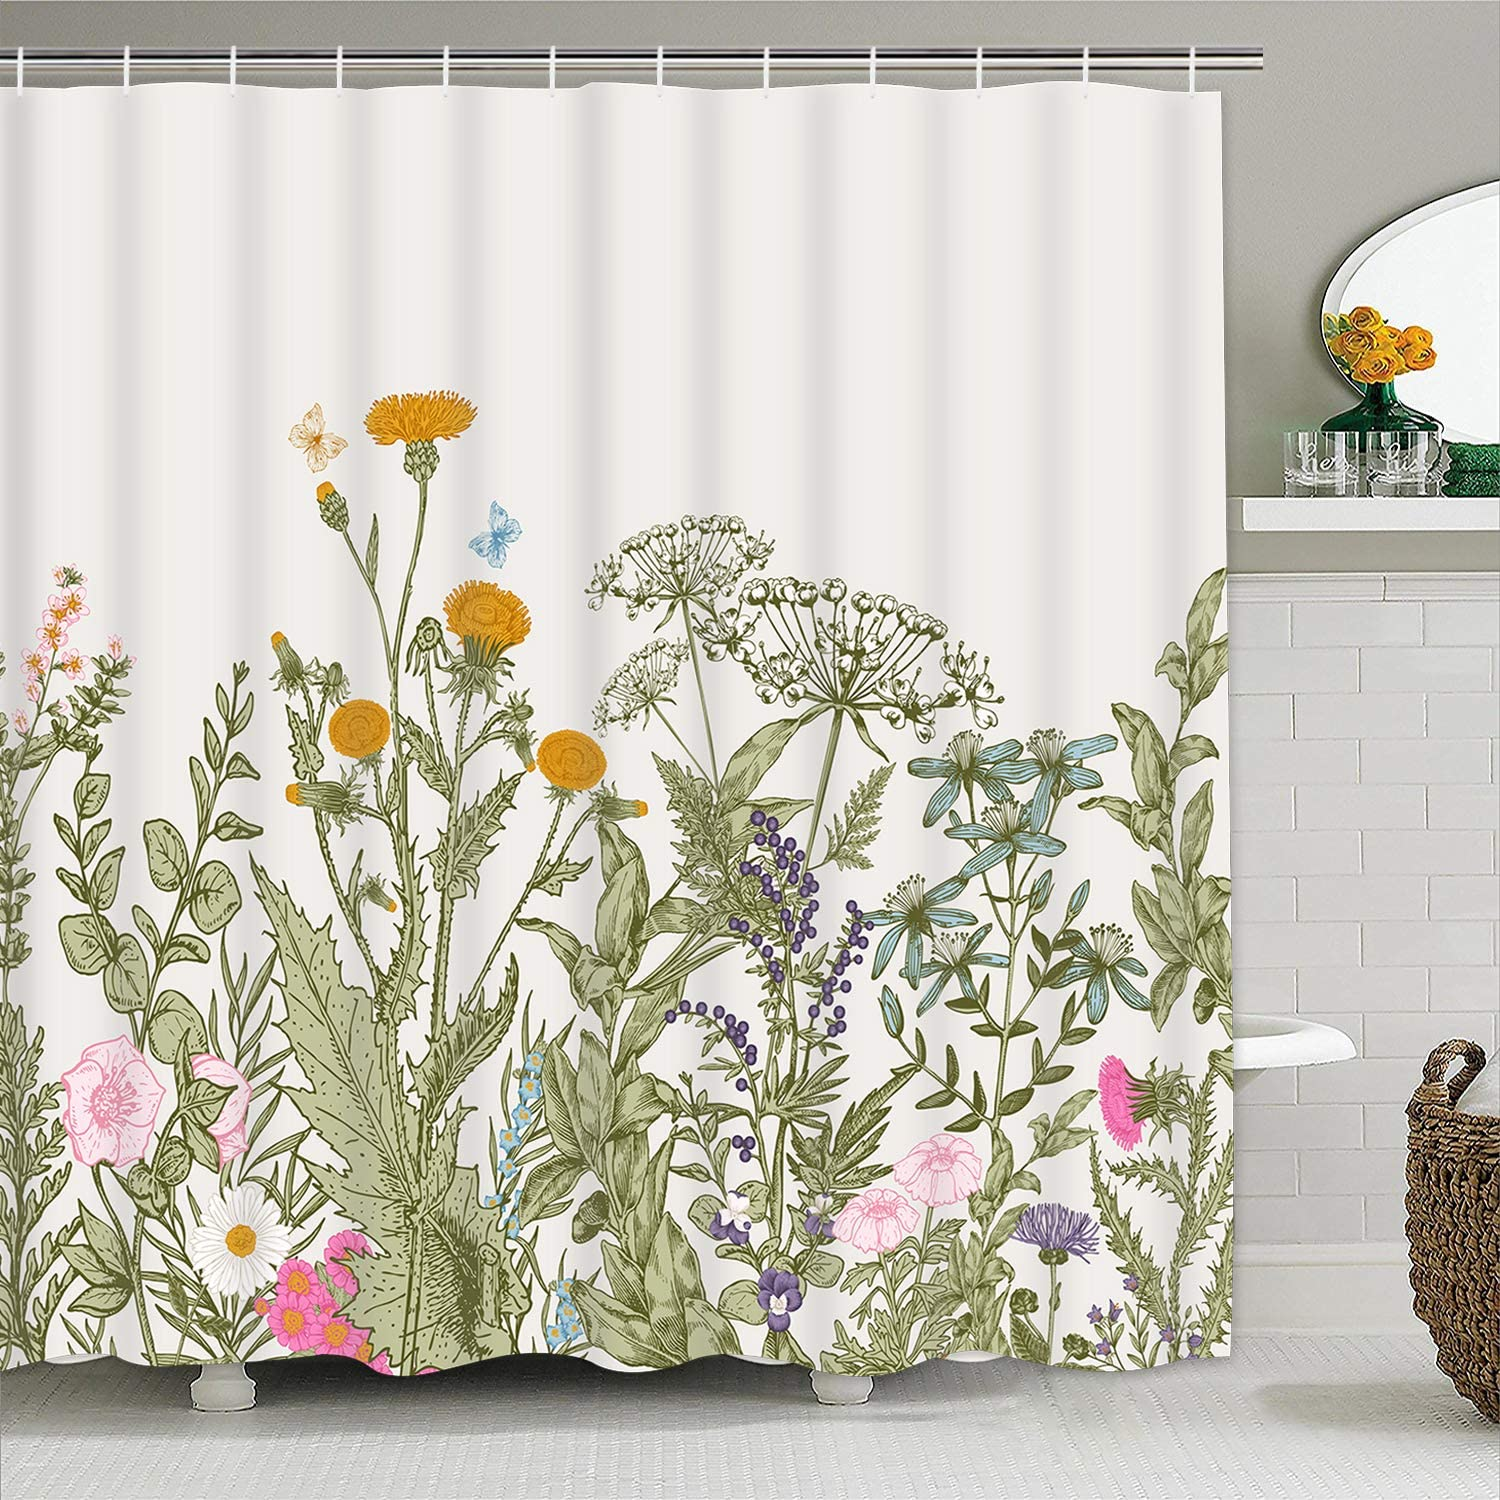 Colorful Floral Plants Shower Curtains with 12 Hooks, Flower Vintage Herbs Shower Curtain Nature Scenery Waterproof Shower Curtain for Bathroom